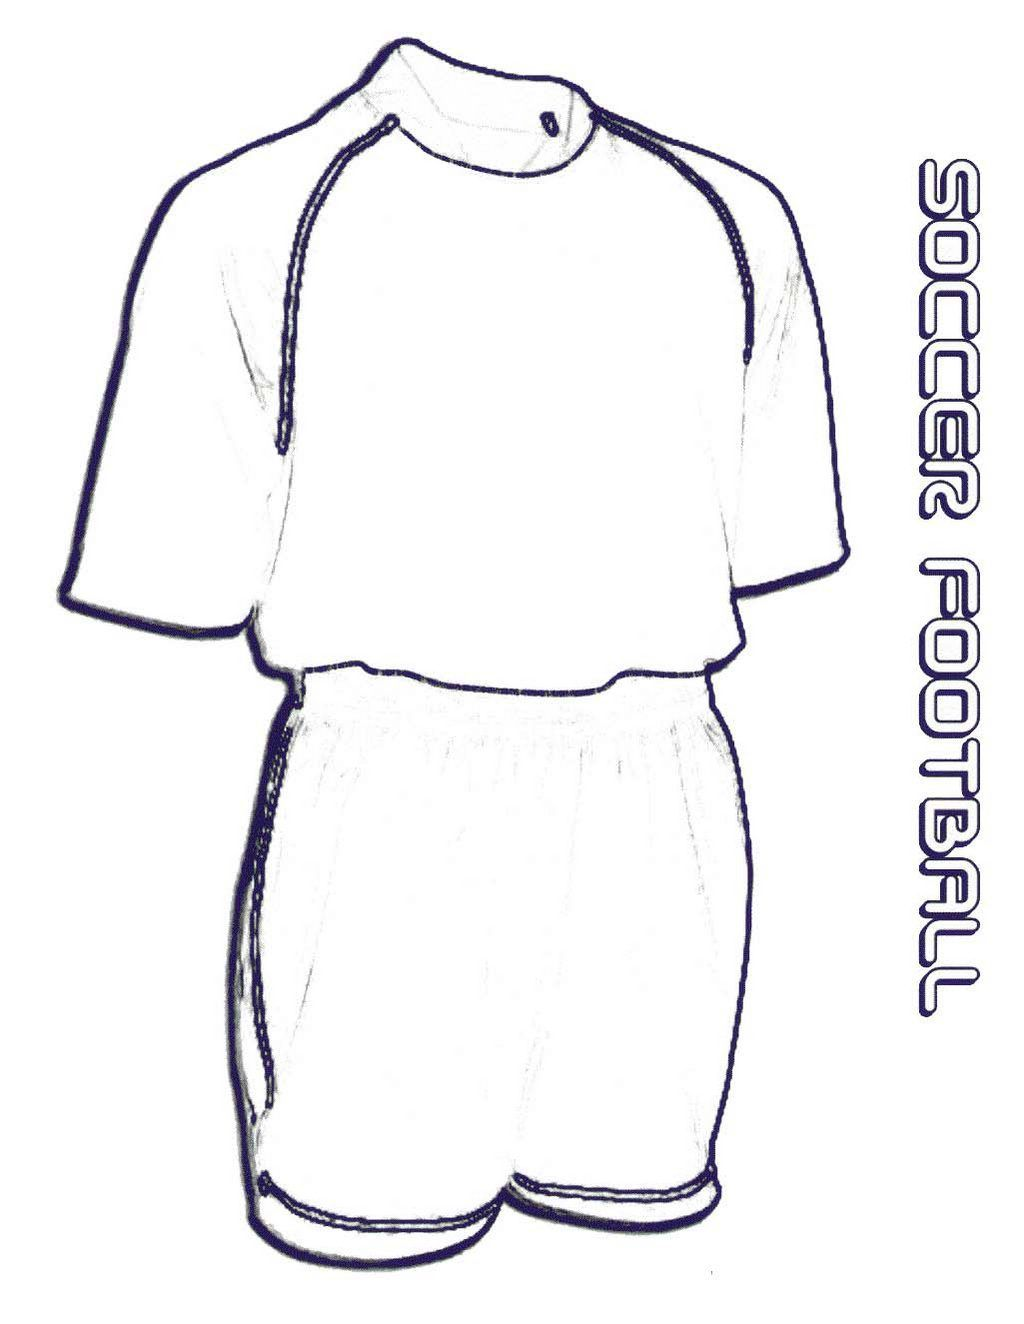 Soccer Football Jersey Coloring Sheet Sports Coloring Pages Football Coloring Pages Coloring Sheets